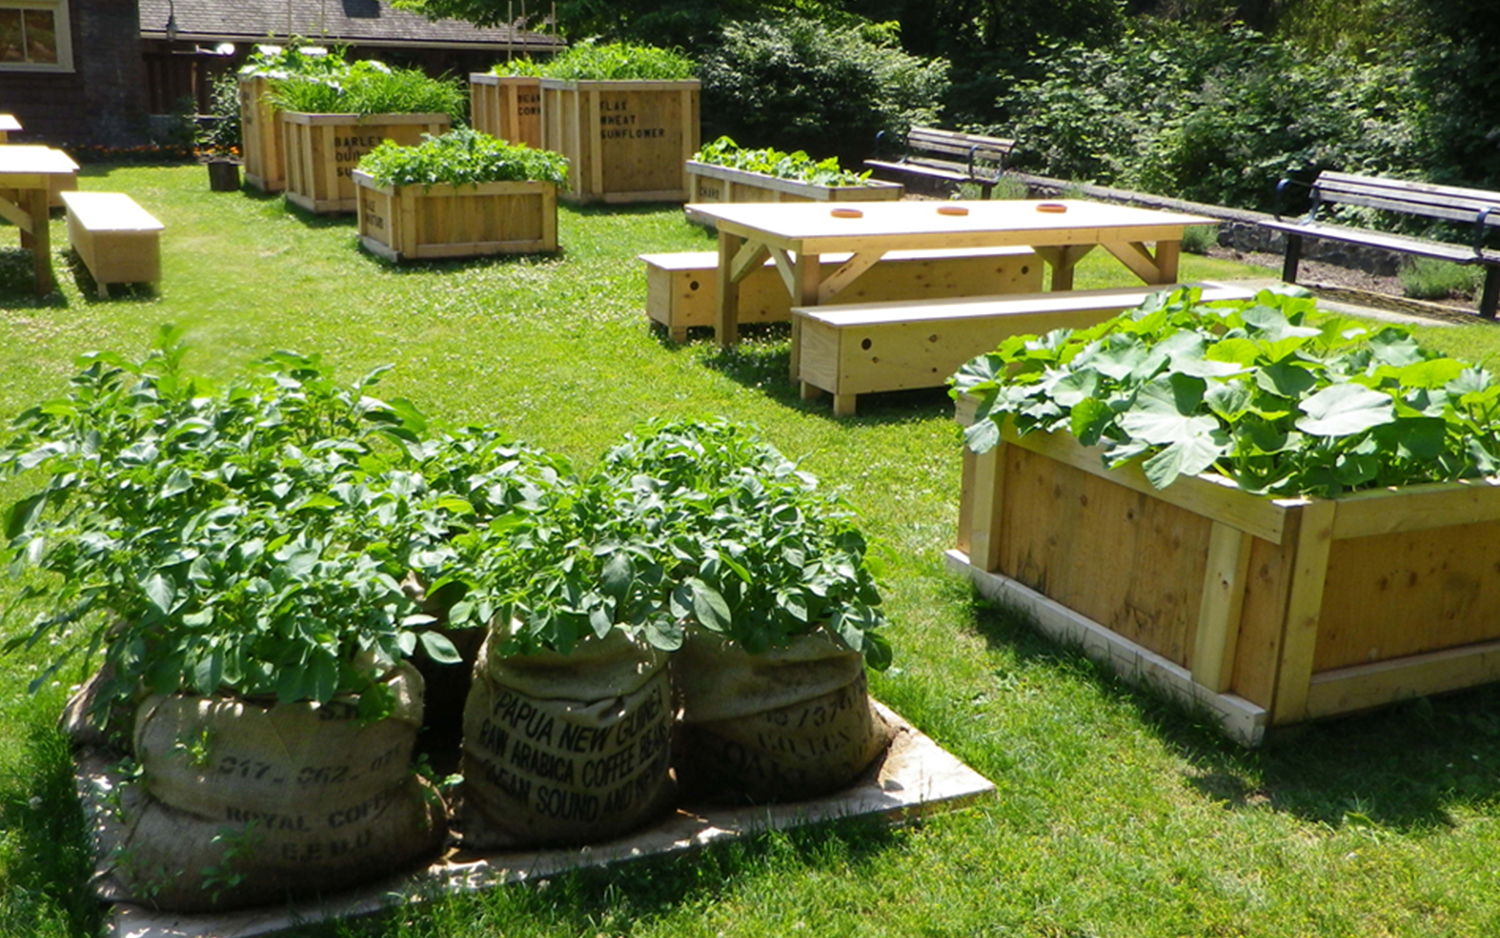 HS-Moveable_Feast__0000s_0001s_0000_MF-Garden-with-tables-July_sized.jpg